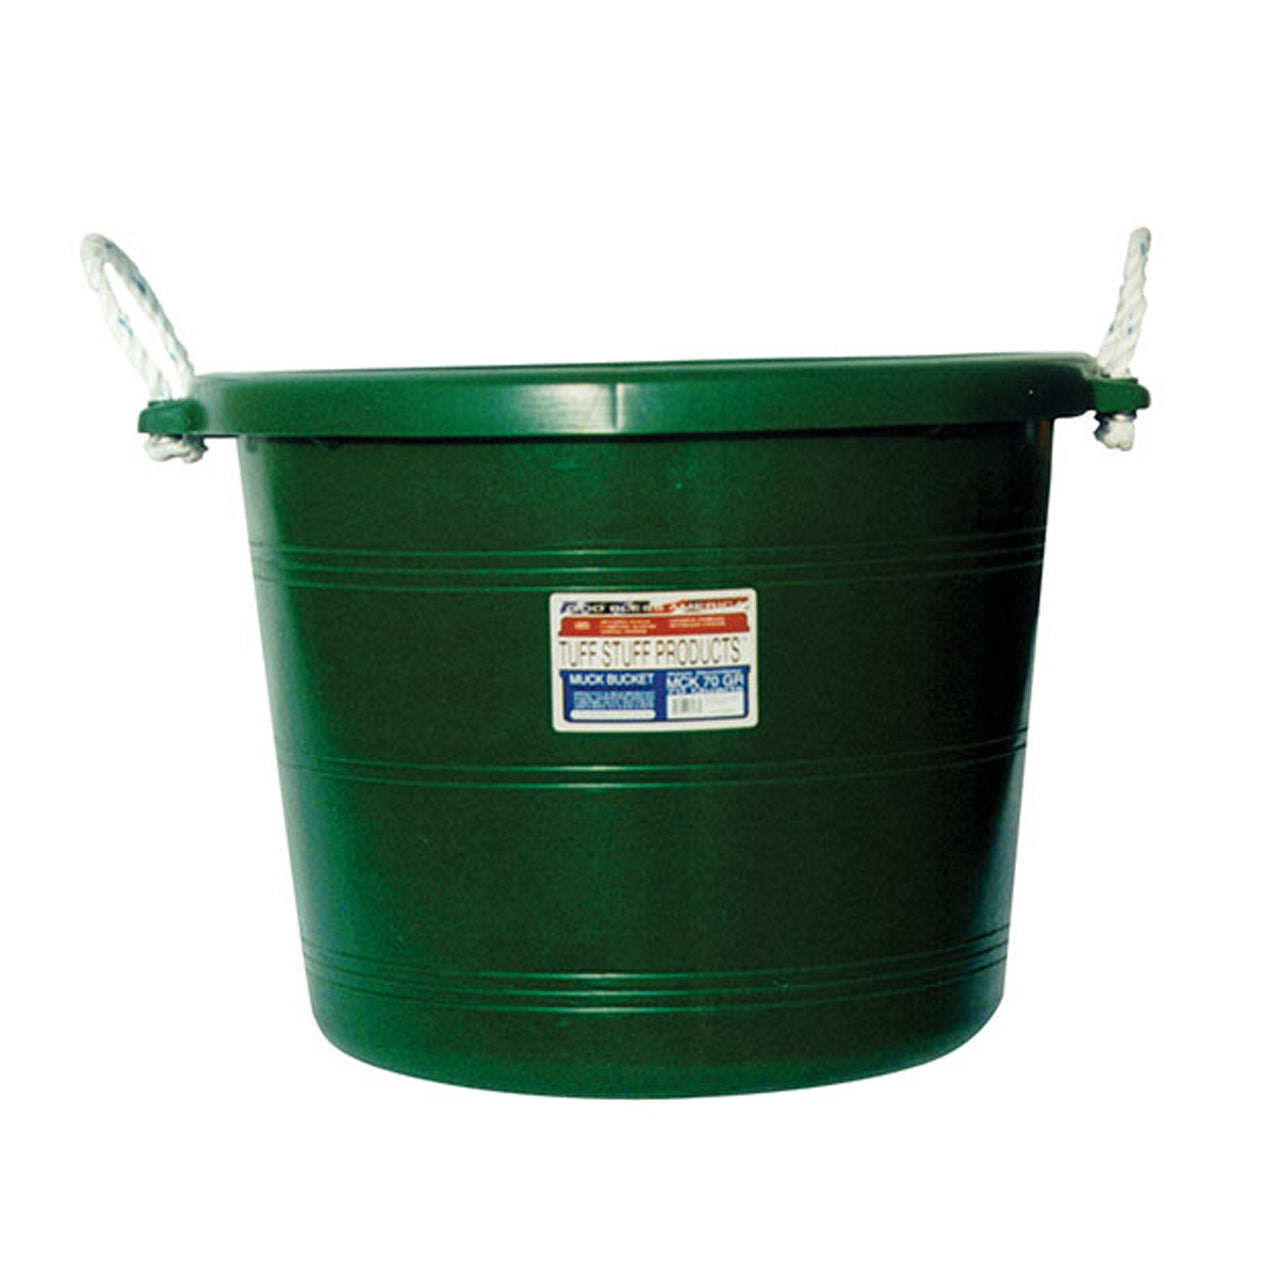 Tuff Stuff Muck Bucket 70 Qts - Green - Buckets Pails Feeders Scoops Tubs Bottles Tuff Stuff - Canada